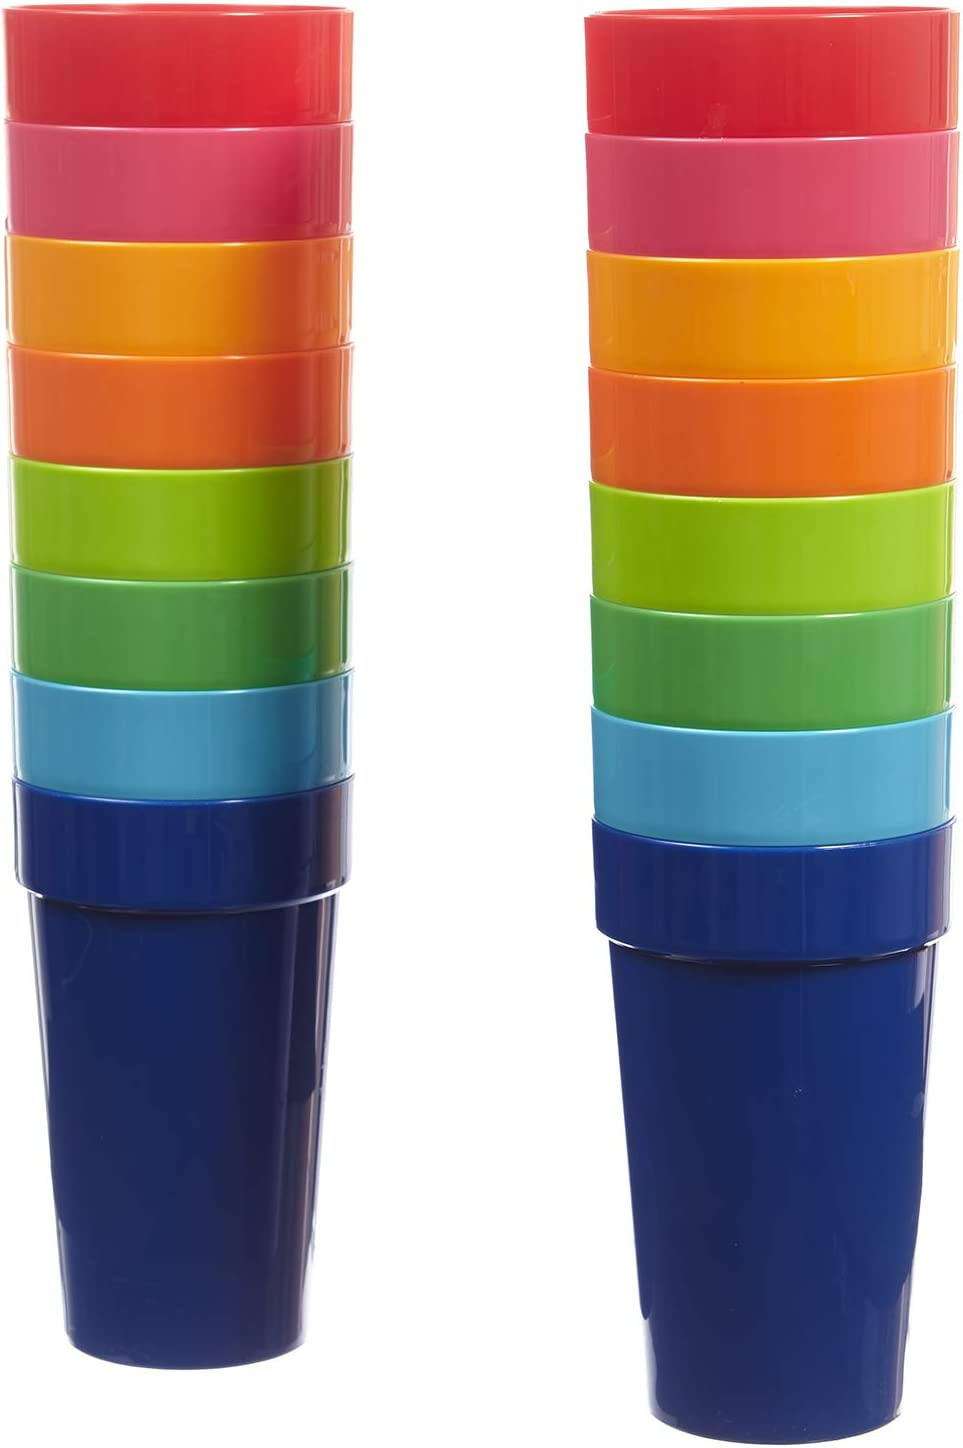 Spectrum 20-ounce Plastic Tumblers | set of 16 in 8 Assorted Colors